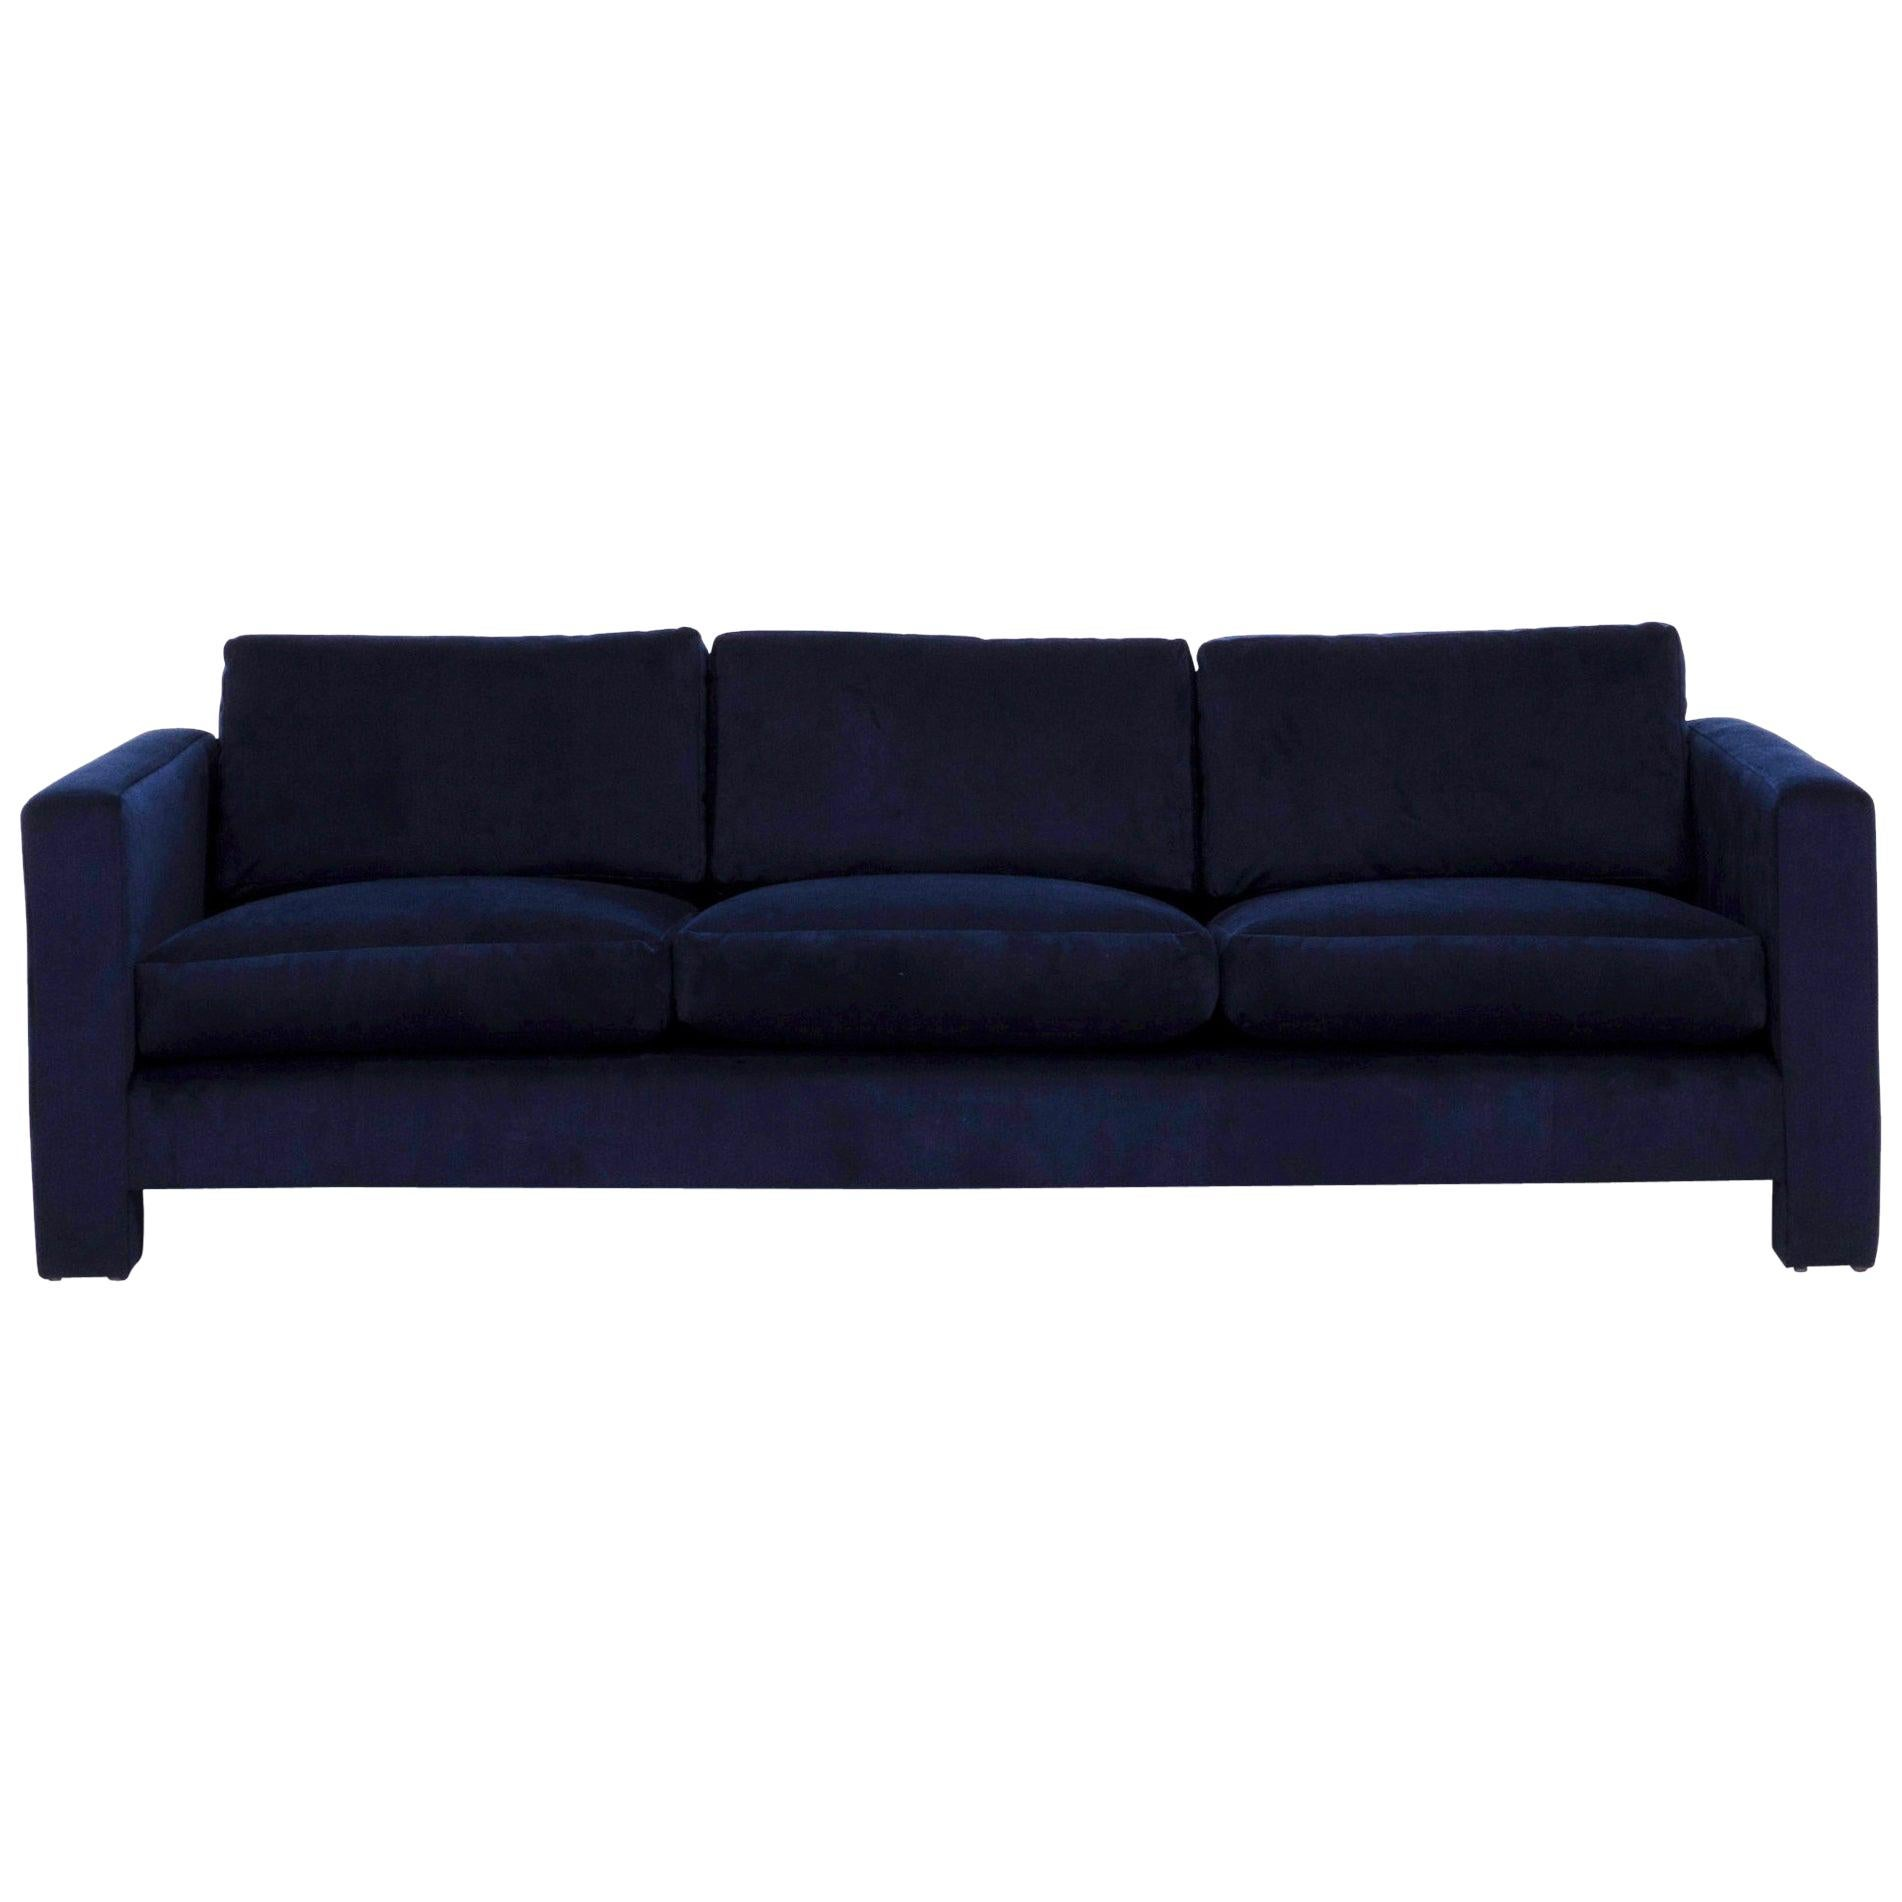 Corduroy 3 Seater Sofa Milo Baughman Sofas 81 For Sale At 1stdibs